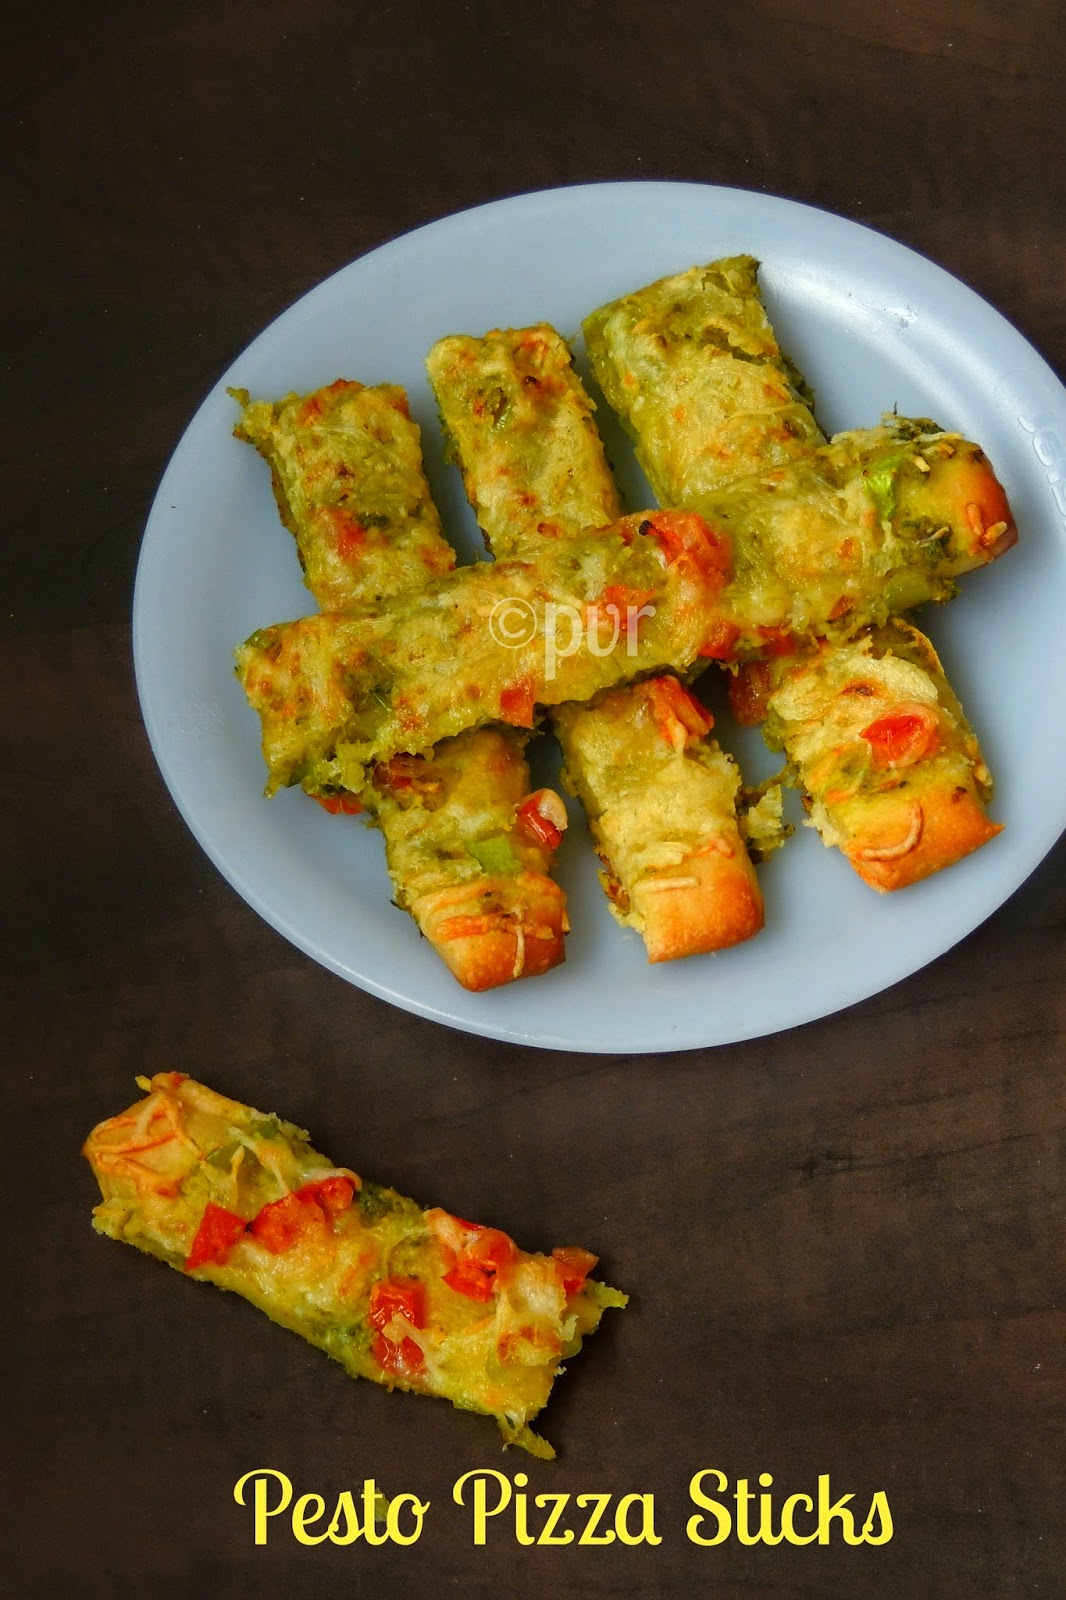 Coriander pesto pizza sticks, pesto pizza sticks